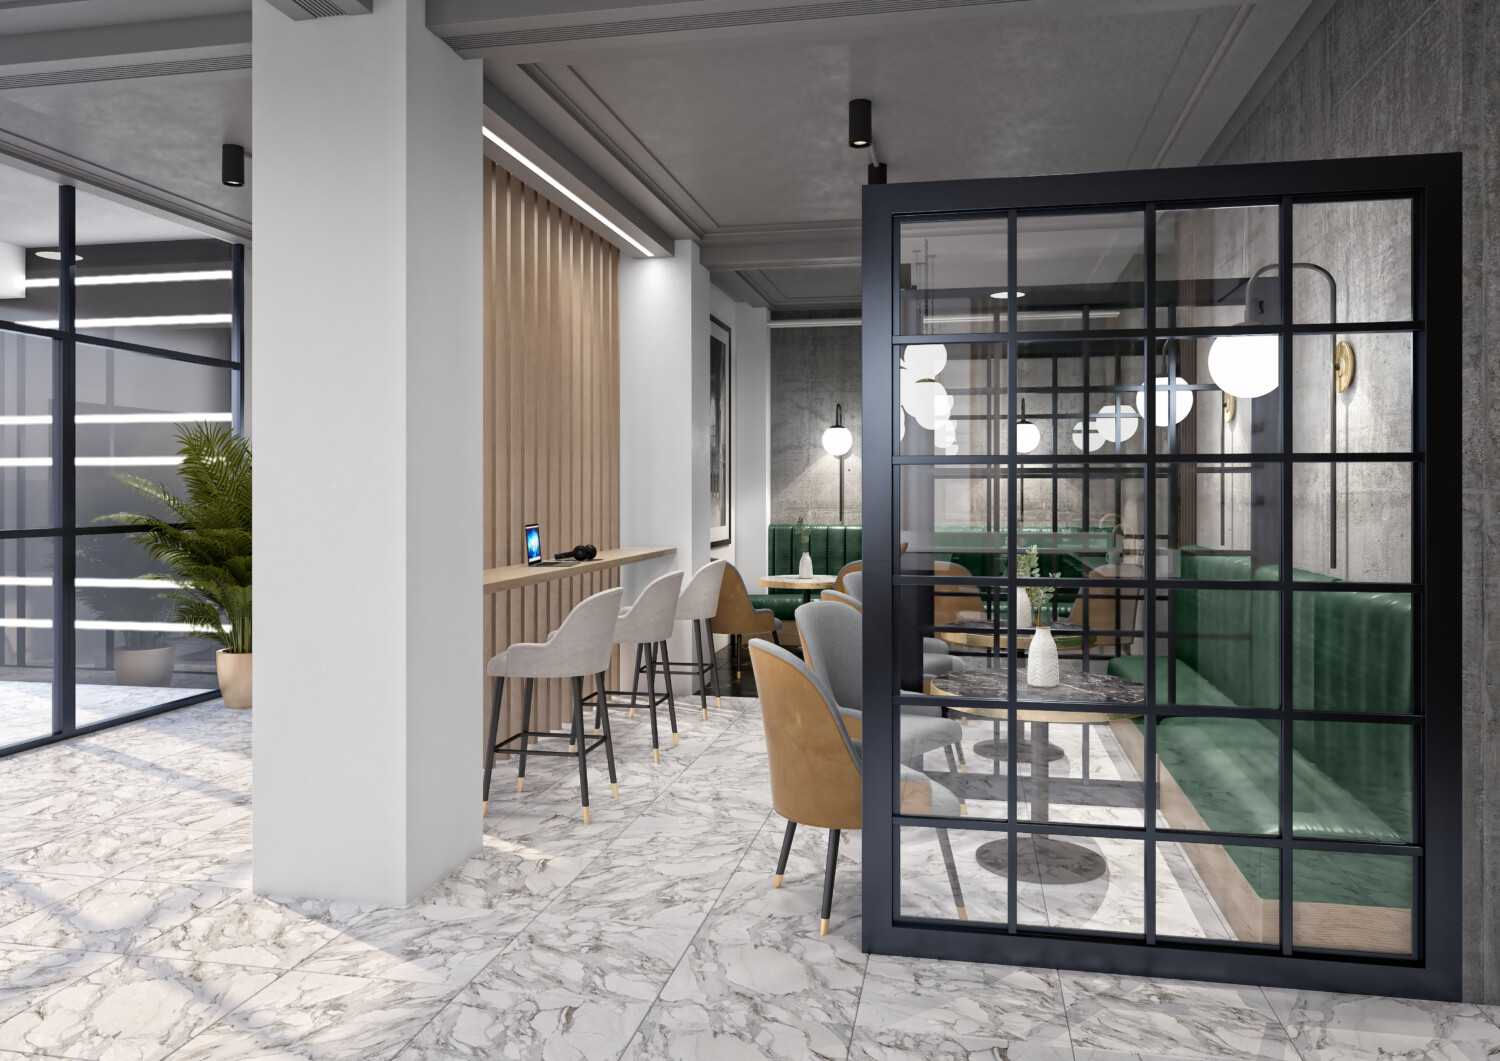 Ergo Real Estate unveils Great Charles Street, a unique office refurbishment in the heart of Birmingham's Central Business District